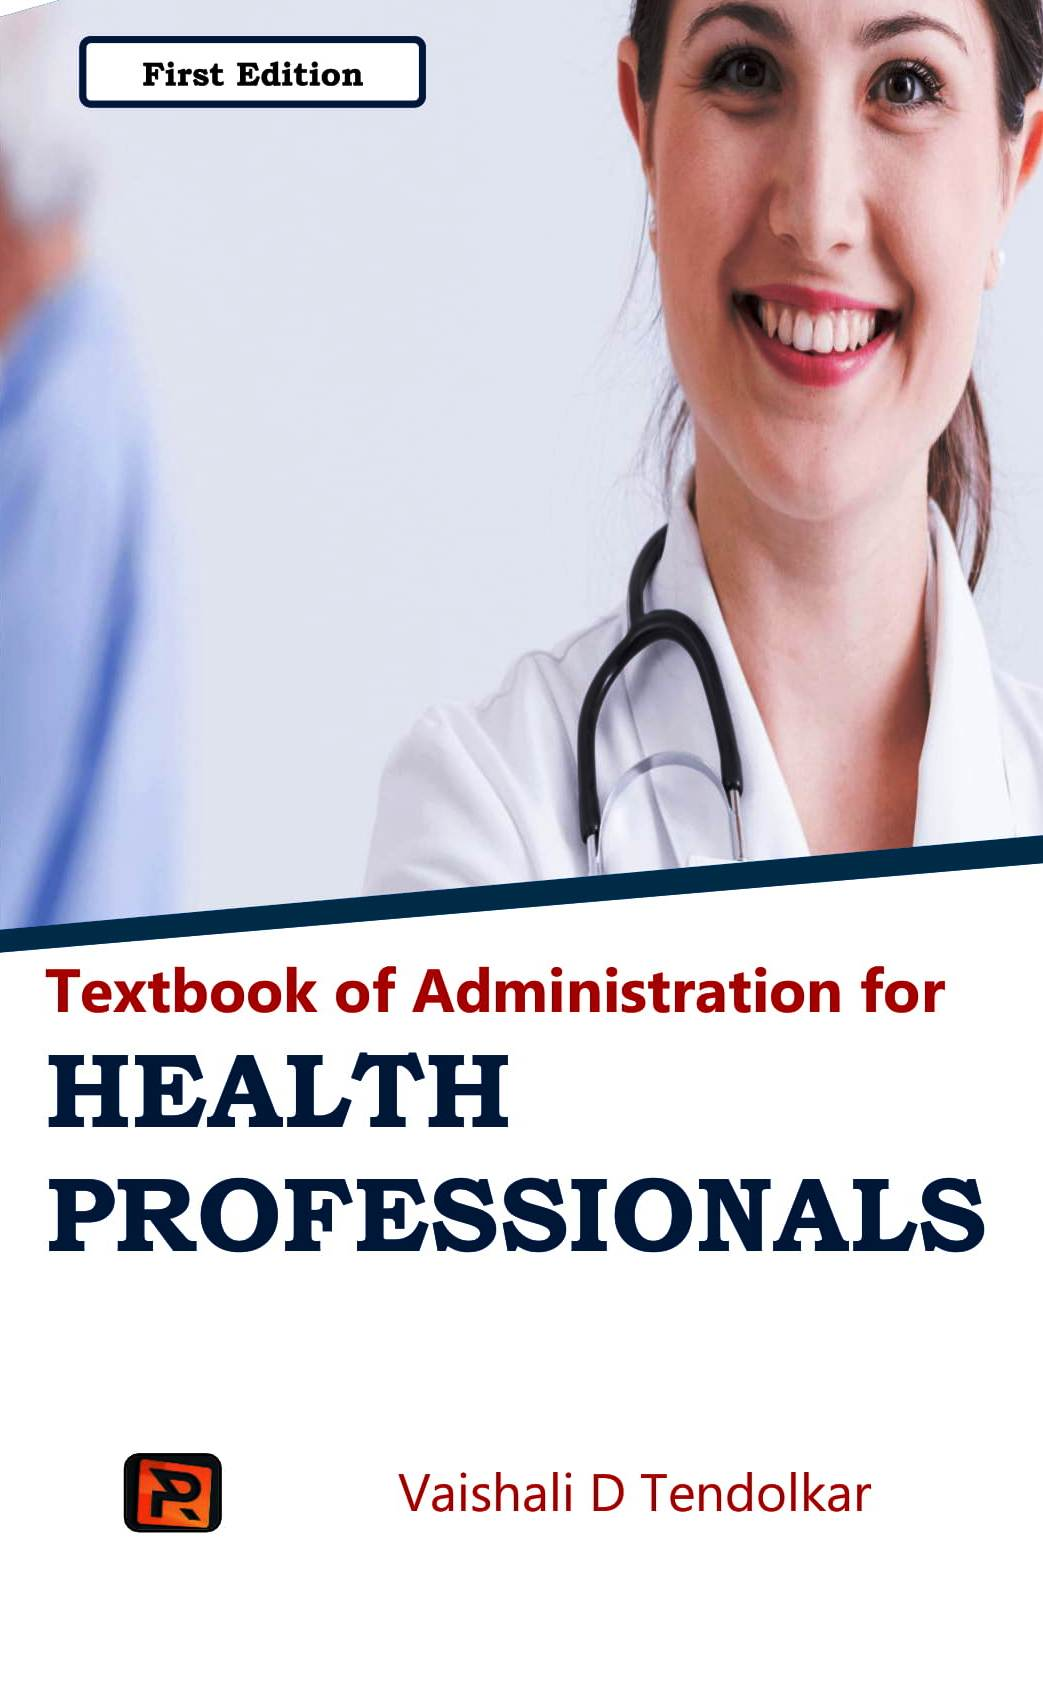 Textbook of Administration for HEALTH PROFESSIONALS